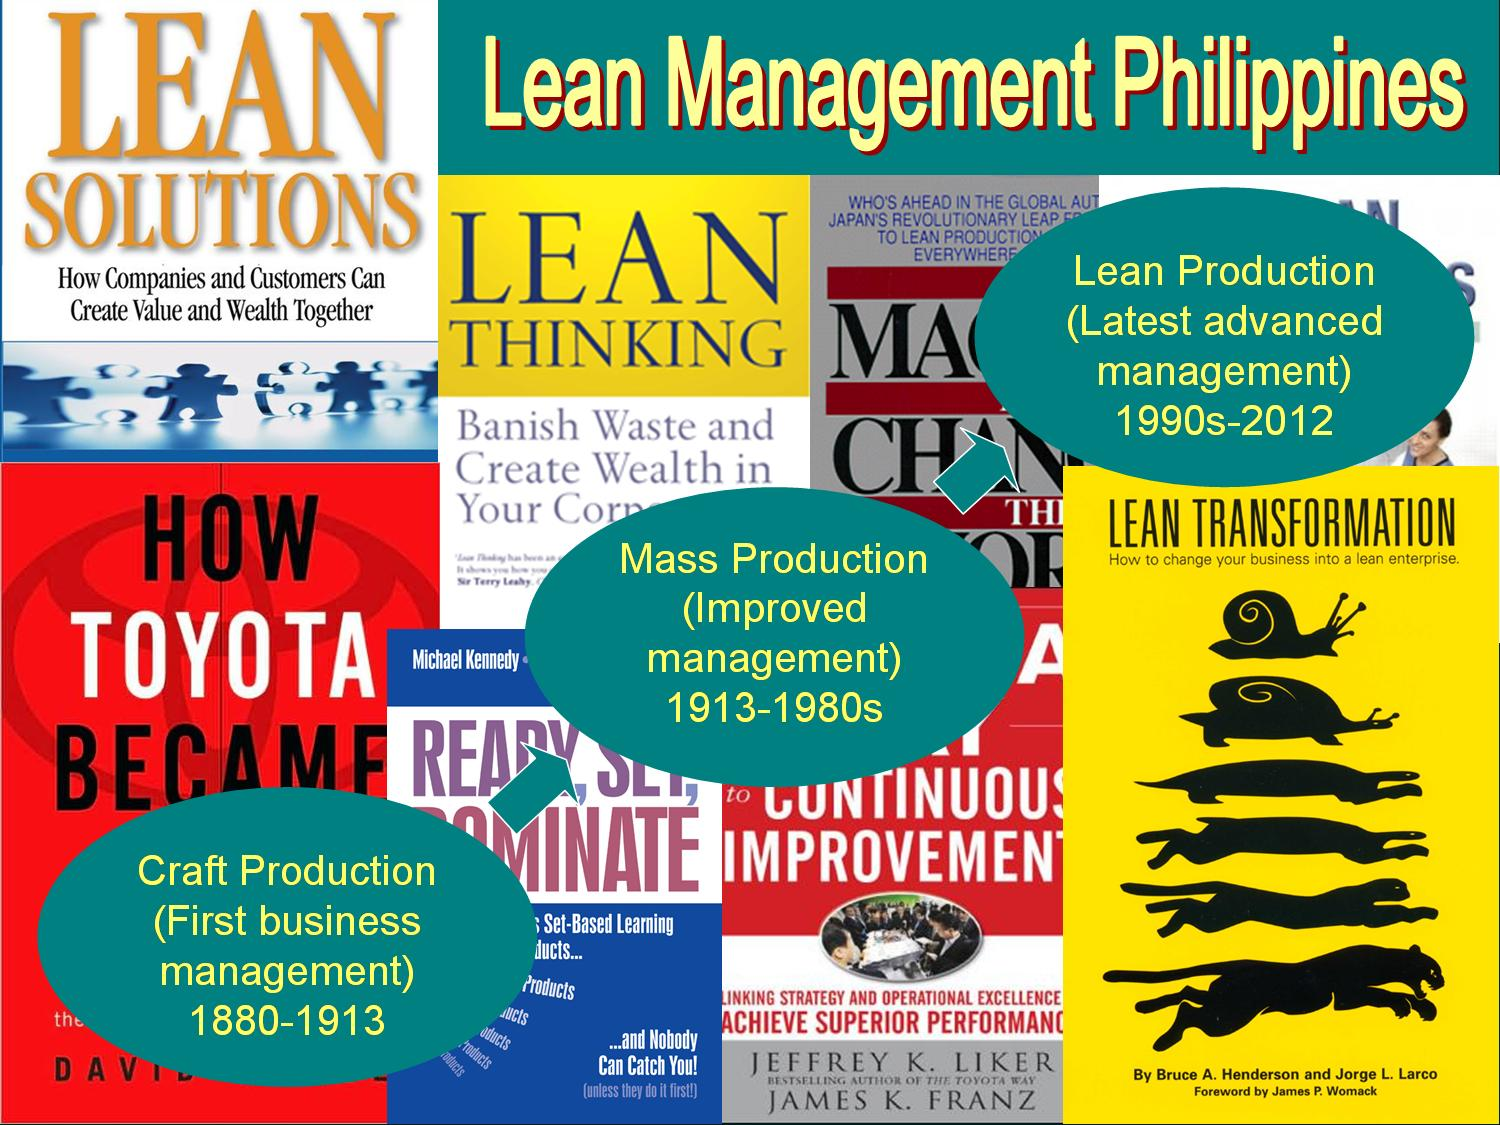 leadership filipino concept Leadership is a process by which a person influences others to accomplish an objective management's main function is to produce order and consistency through processes, such as planning, budgeting, organizing, staffing, and problem solving while leadership's main function is to produce movement.